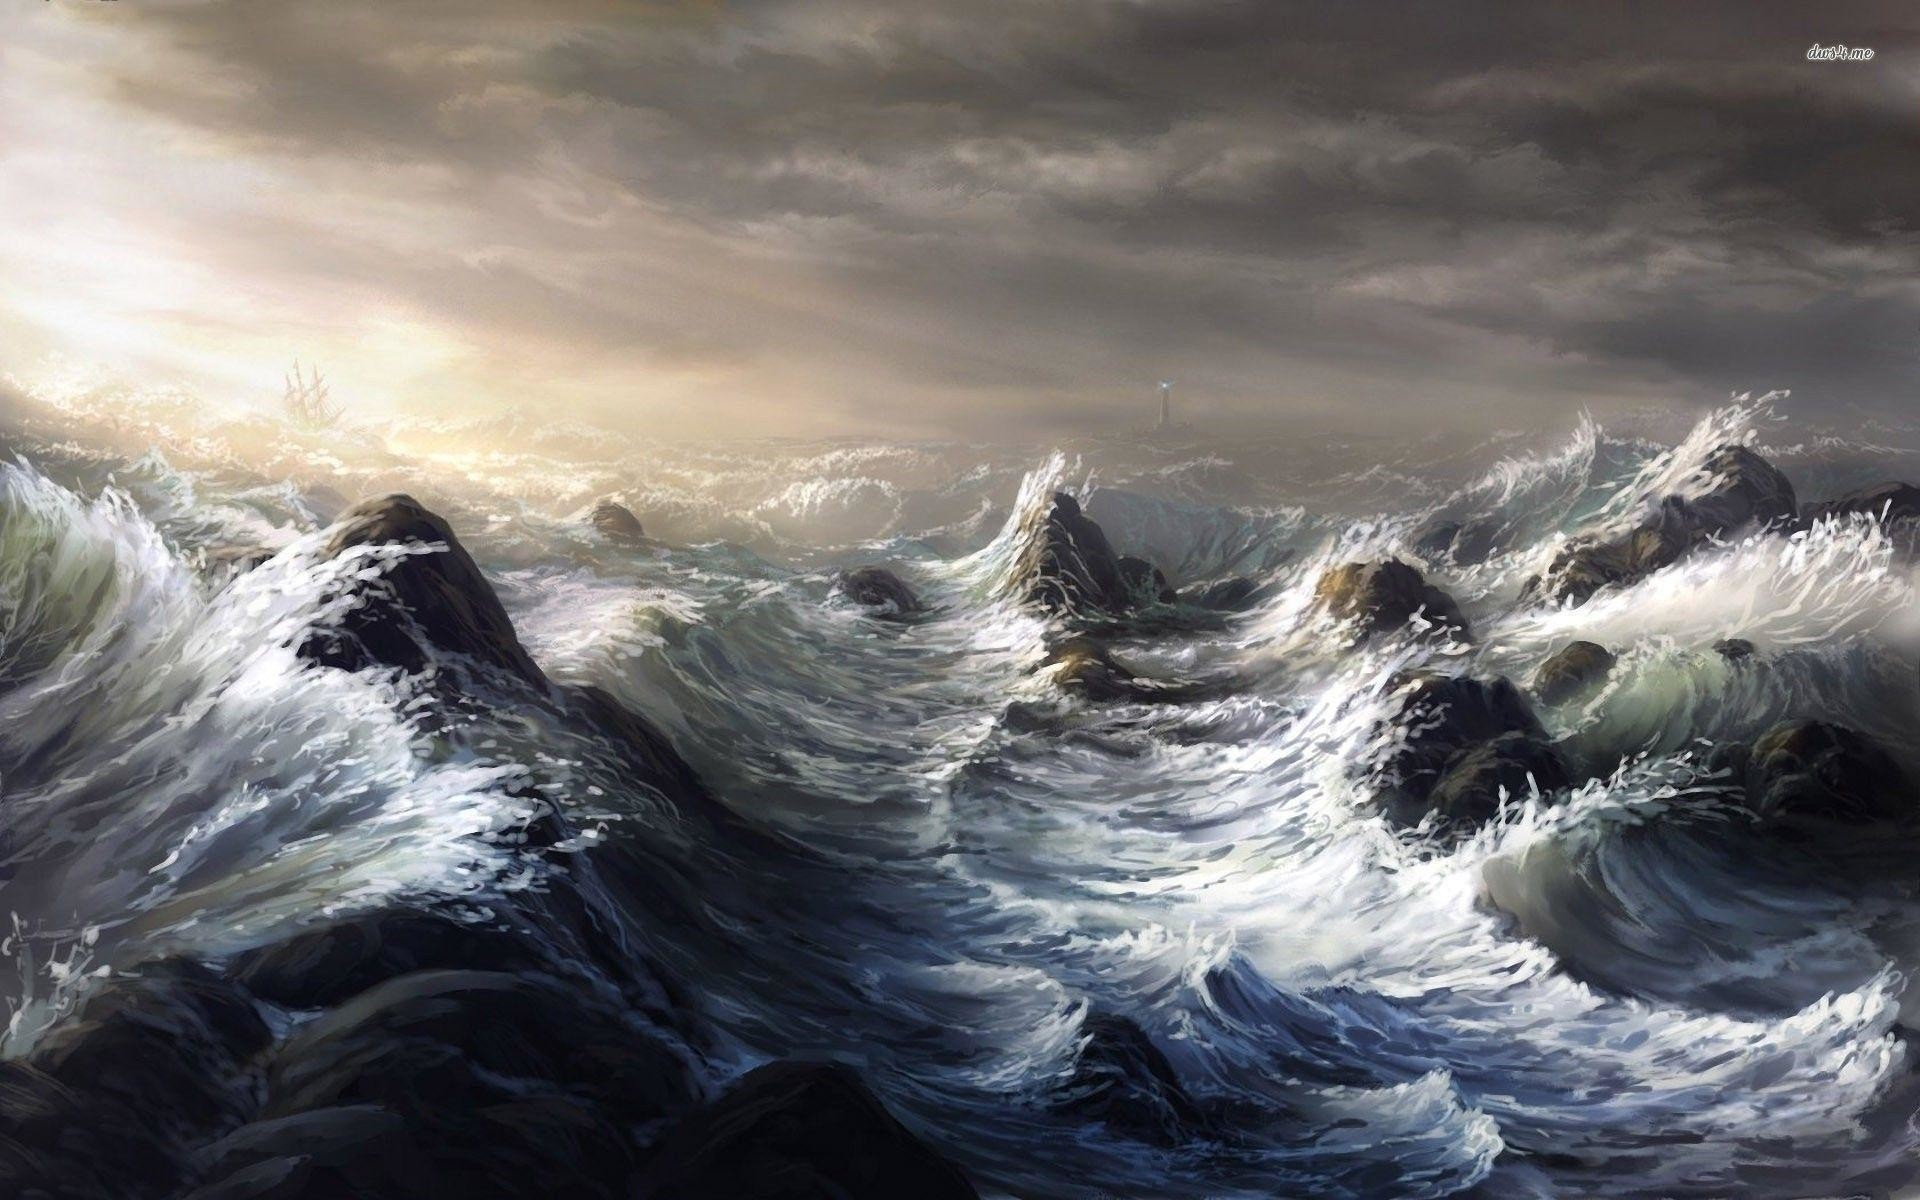 1920x1200 Ocean Storm Wallpapers - Full HD wallpaper search